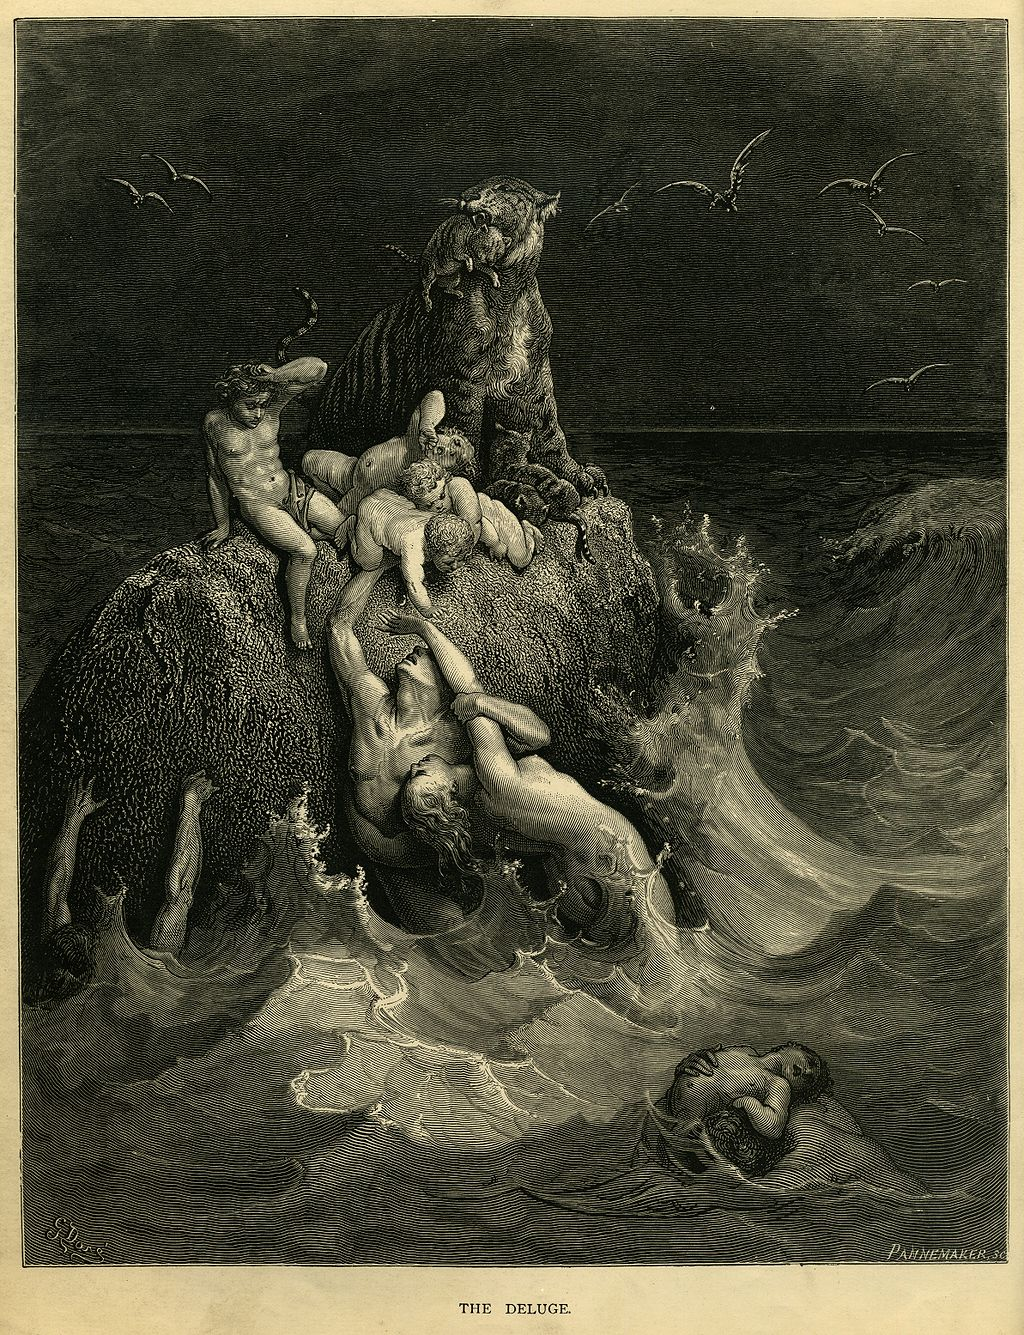 """The Deluge"", Frontispiece to Doré's illustrated edition of the Bible. Based on the story of Noah's Ark, this shows humans and a tiger doomed by the flood futilely attempting to save their children and cubs."